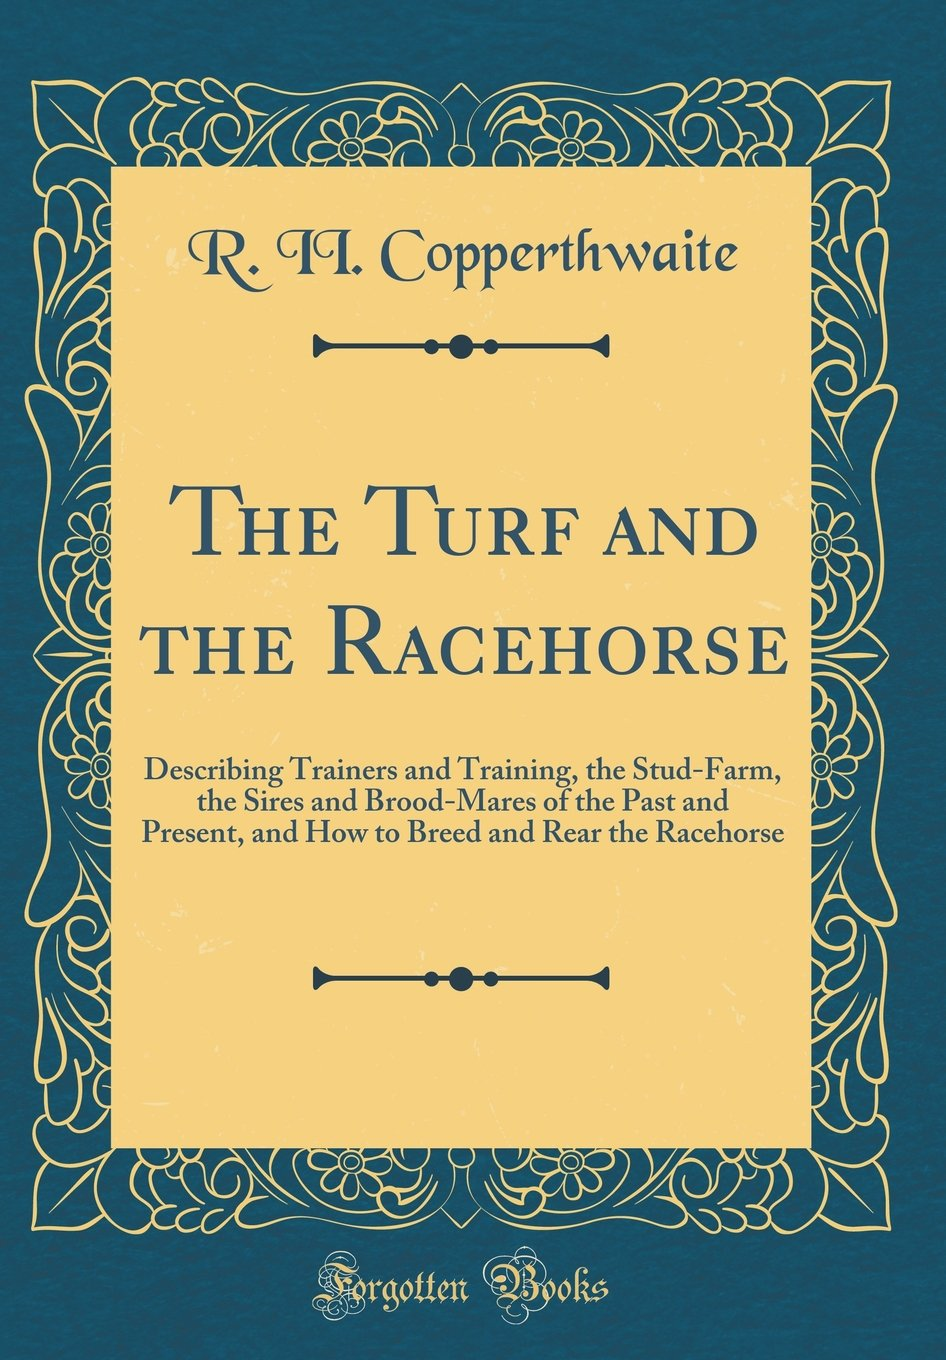 The Turf and the Racehorse: Describing Trainers and Training, the Stud-Farm, the Sires and Brood-Mares of the Past and Present, and How to Breed and Rear the Racehorse (Classic Reprint) PDF